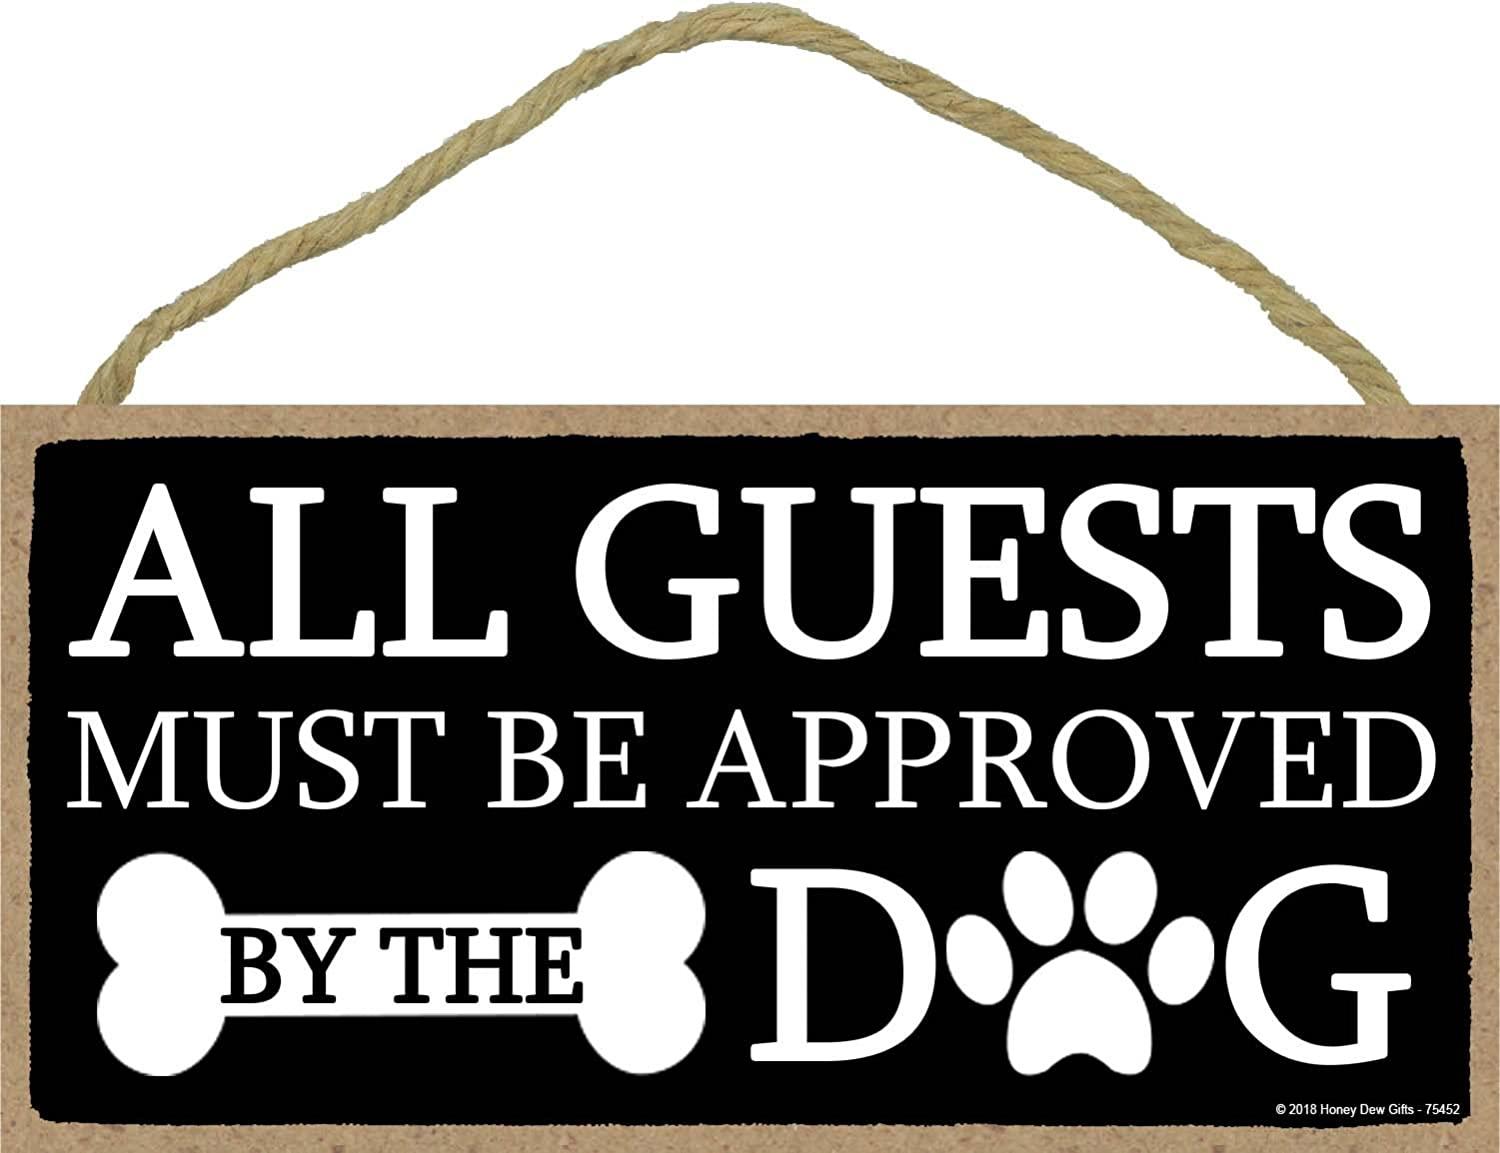 Honey Dew Gifts All Guests Must Be Approved by The Dog - 5 x 10 inch Hanging, Wall Art, Decorative Wood Sign Home Decor